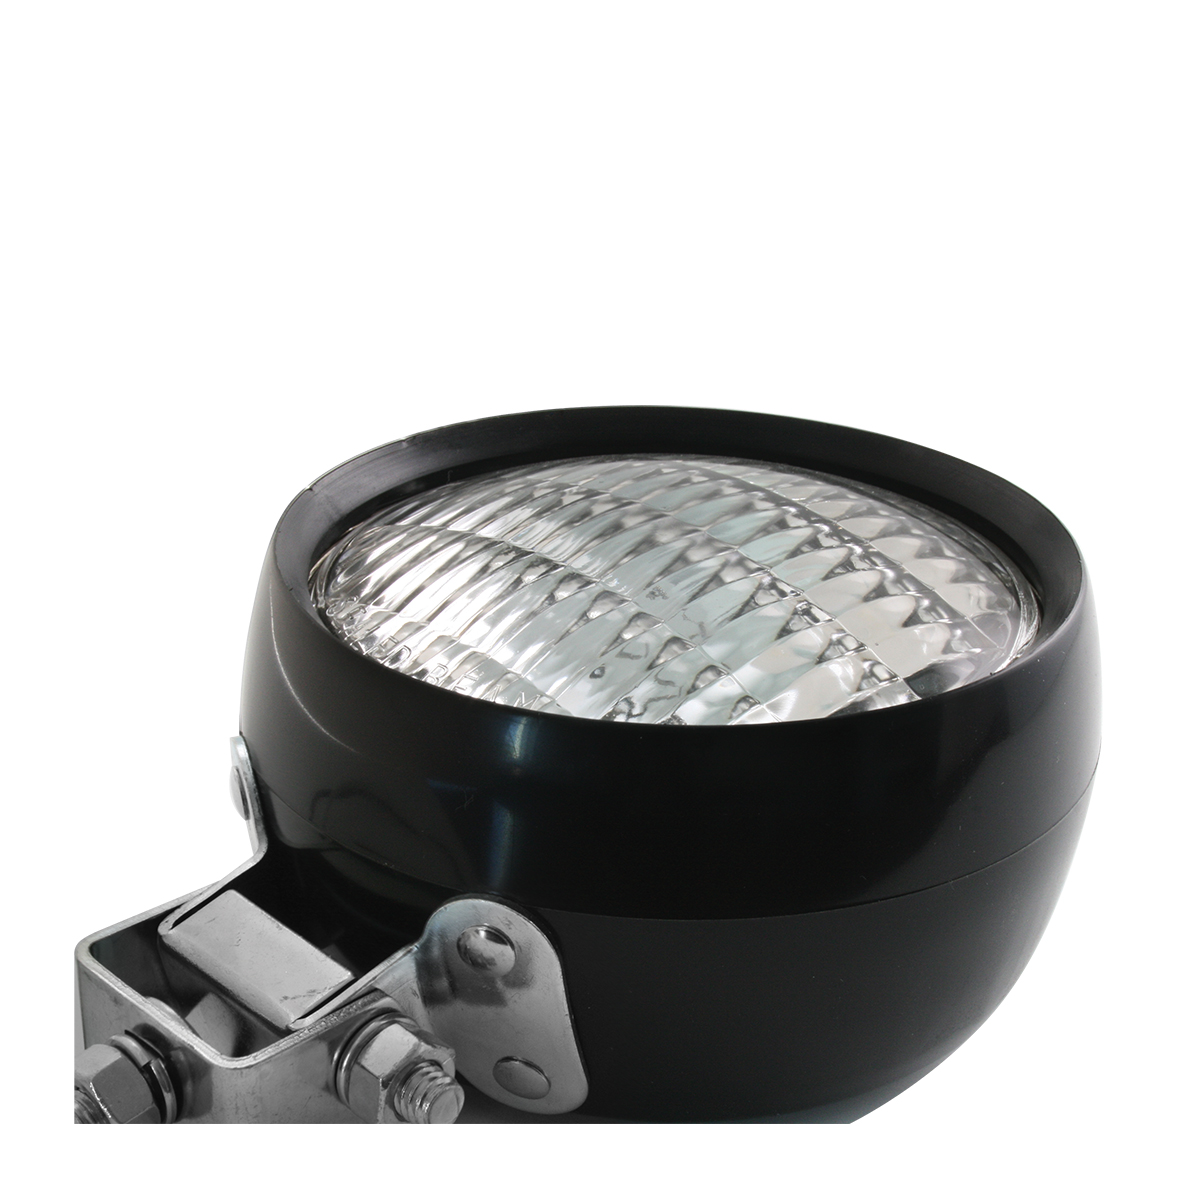 """#80417 4 ½"""" Tractor Utility Light - Facing Up View"""